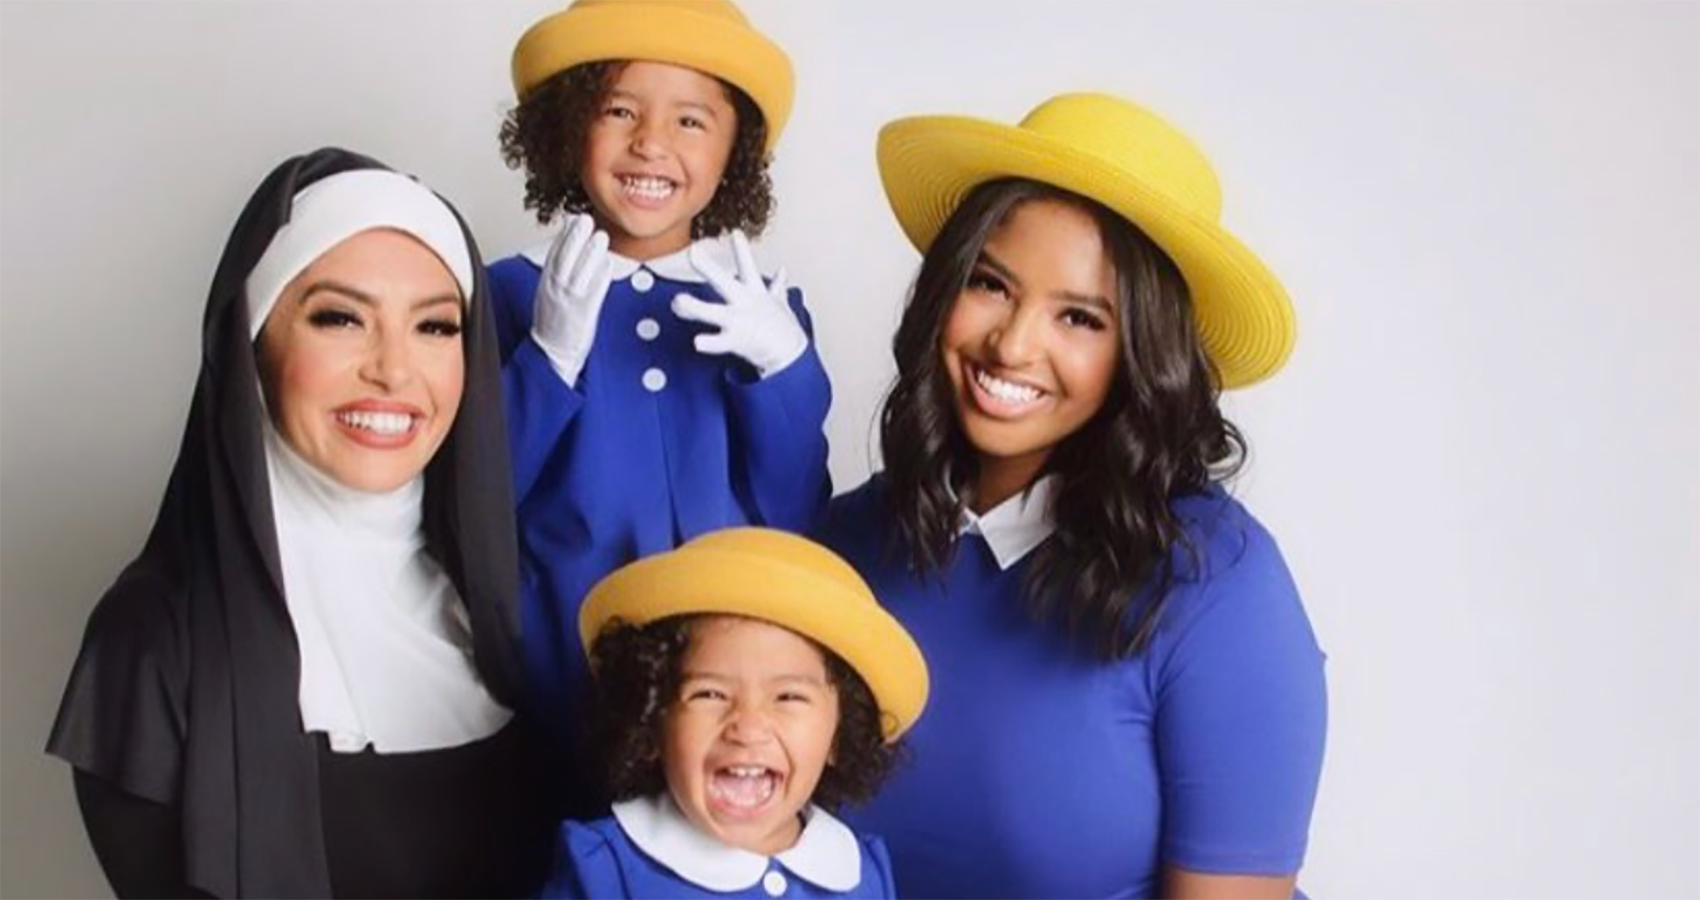 See Vanessa Bryant's Daughter's Cute Costumes | Moms.com